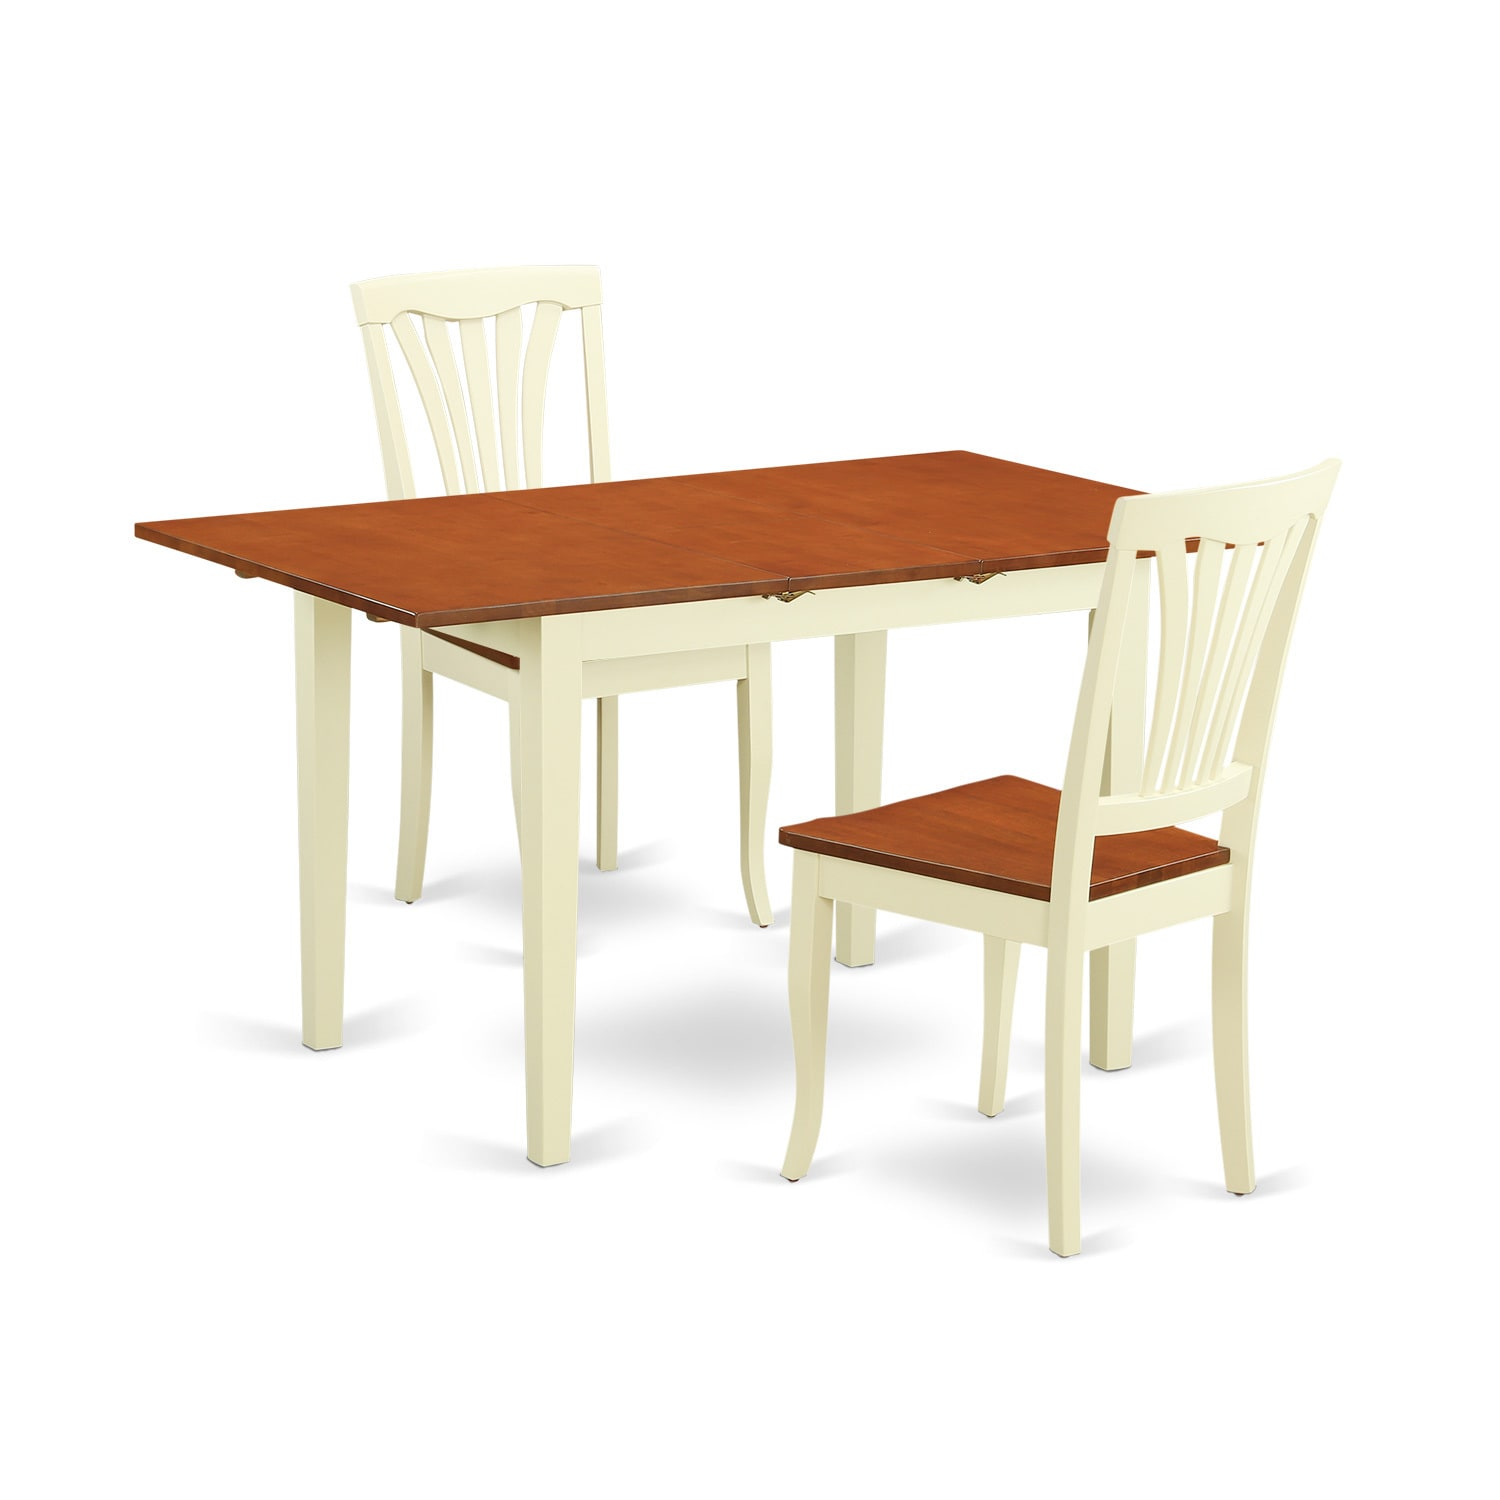 3-piece Dining Room Set with Dining Table and 2 Dining Ch...